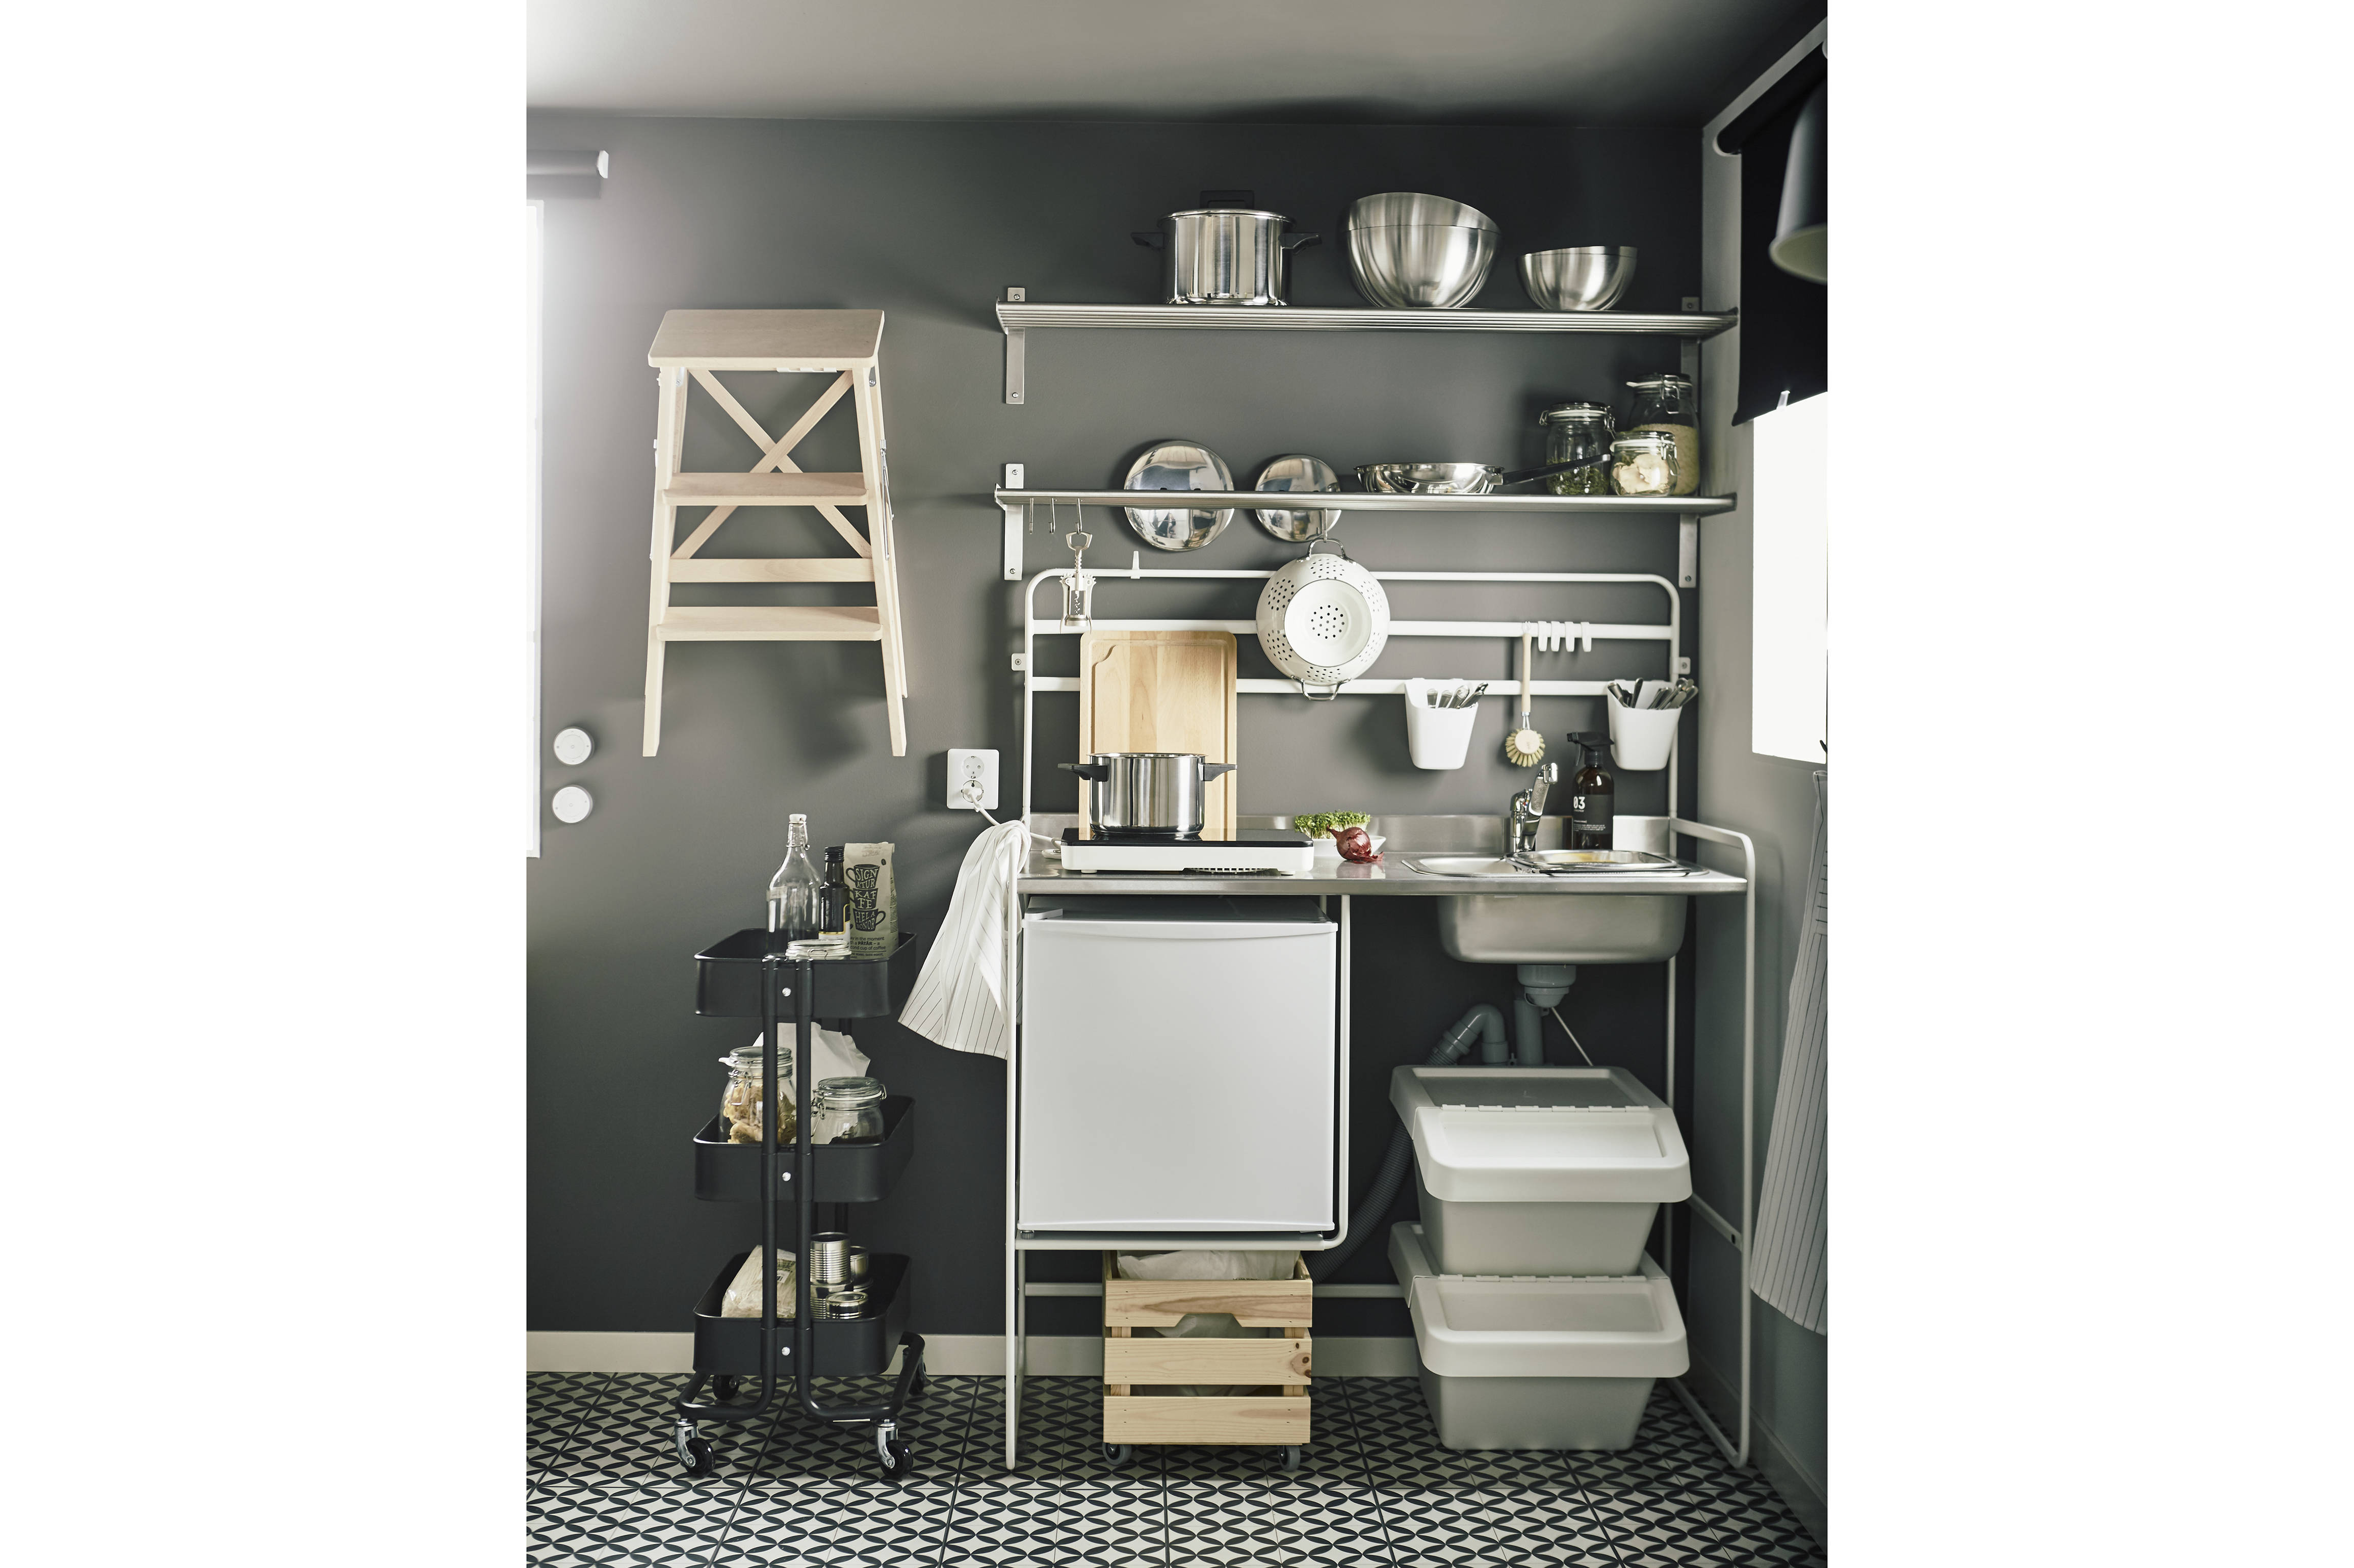 Ikea Küche Sunnersta Sunnersta Mini Kitchen Ikea Kitchen Appliances Tips And